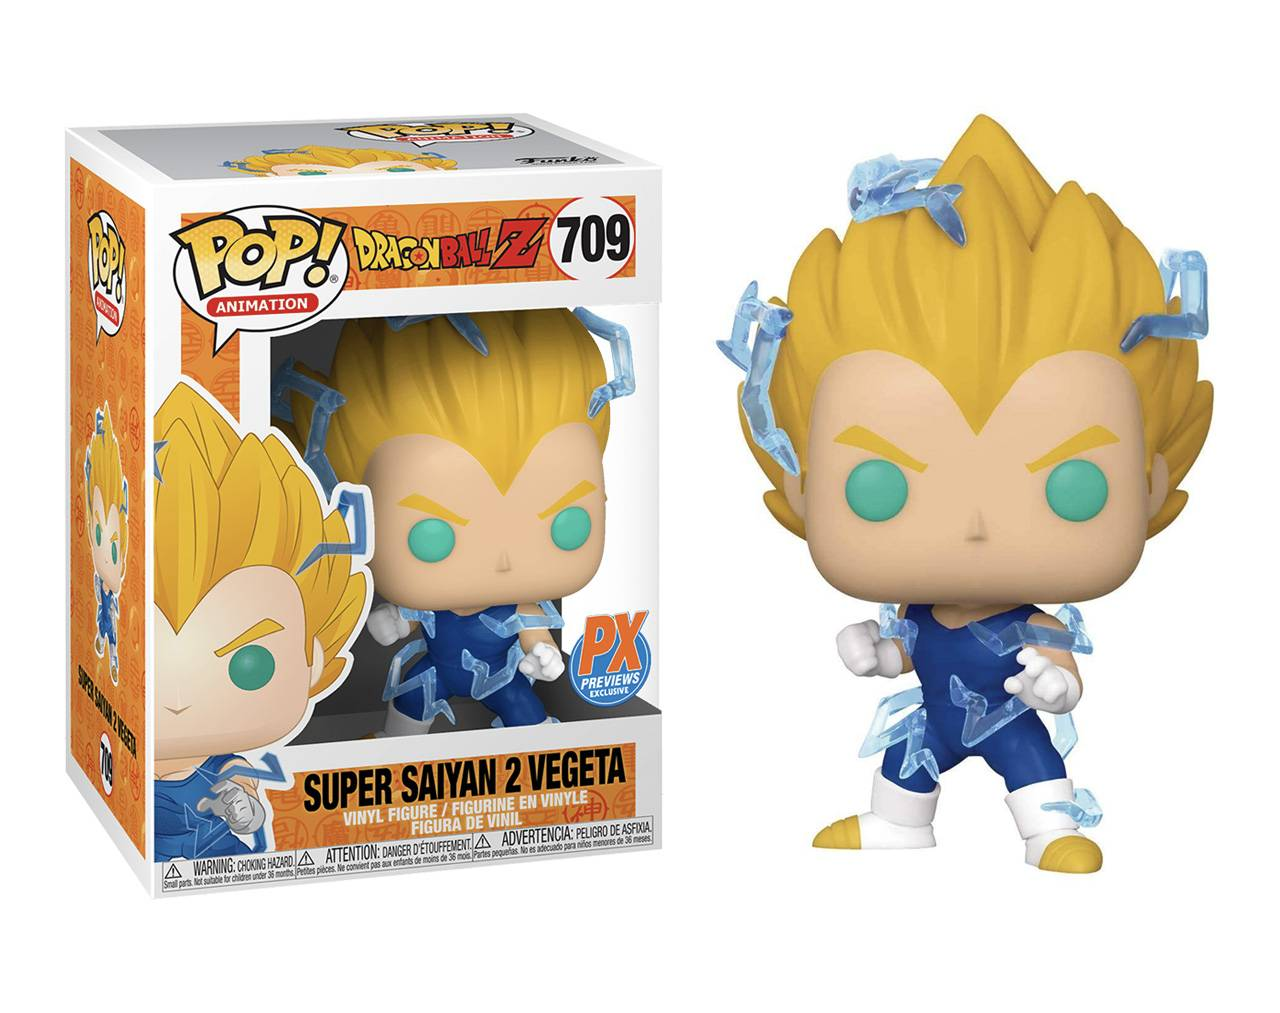 Vegeta (Super Saiyan 2) Pop! Vinyl